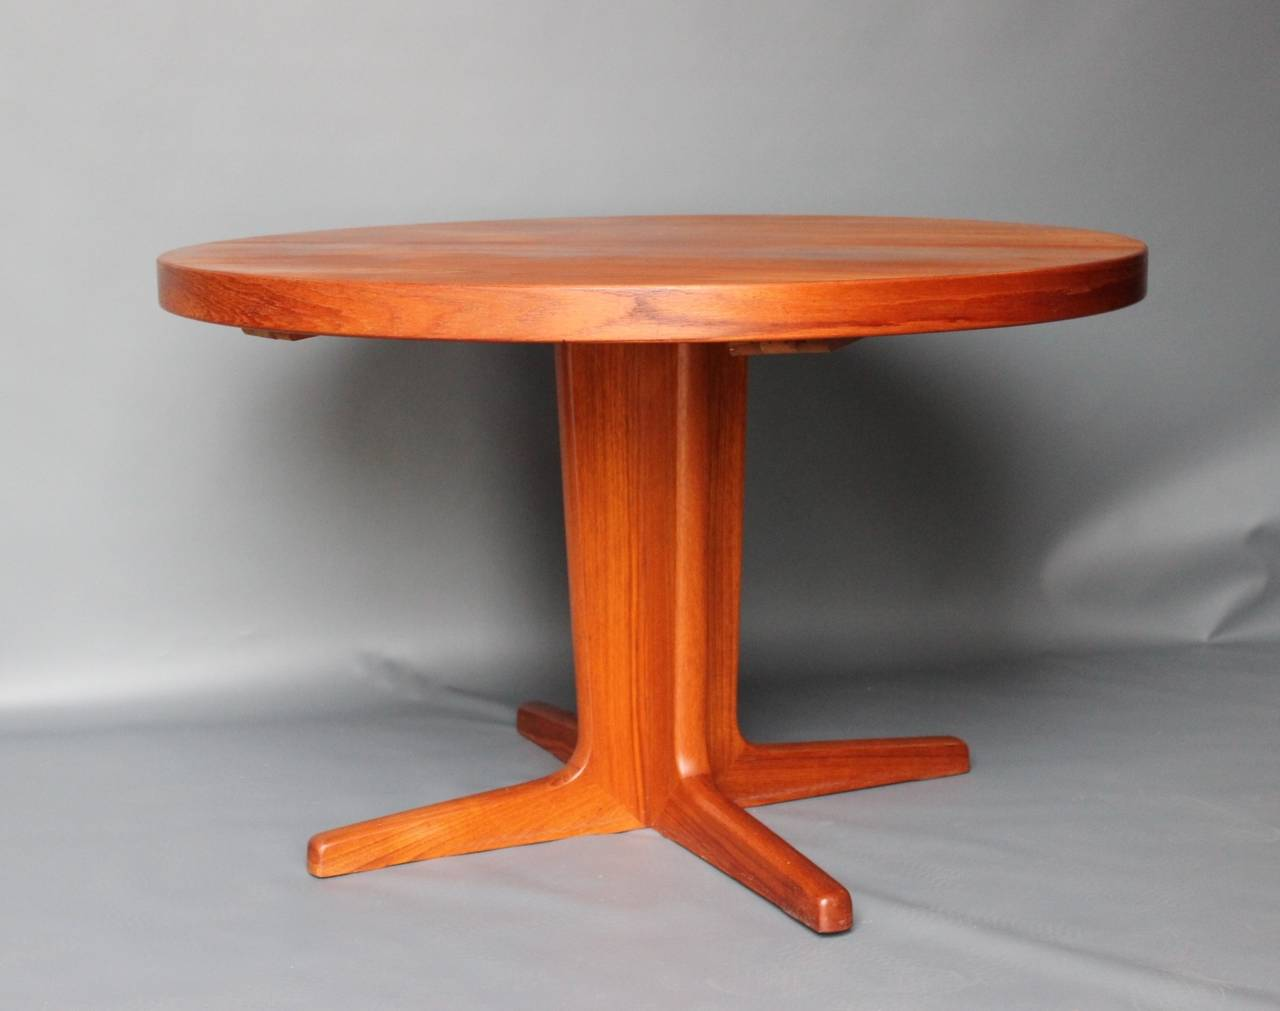 Scandinavian Modern Dining Table In Teak Manufactured By Skovby 1960s For